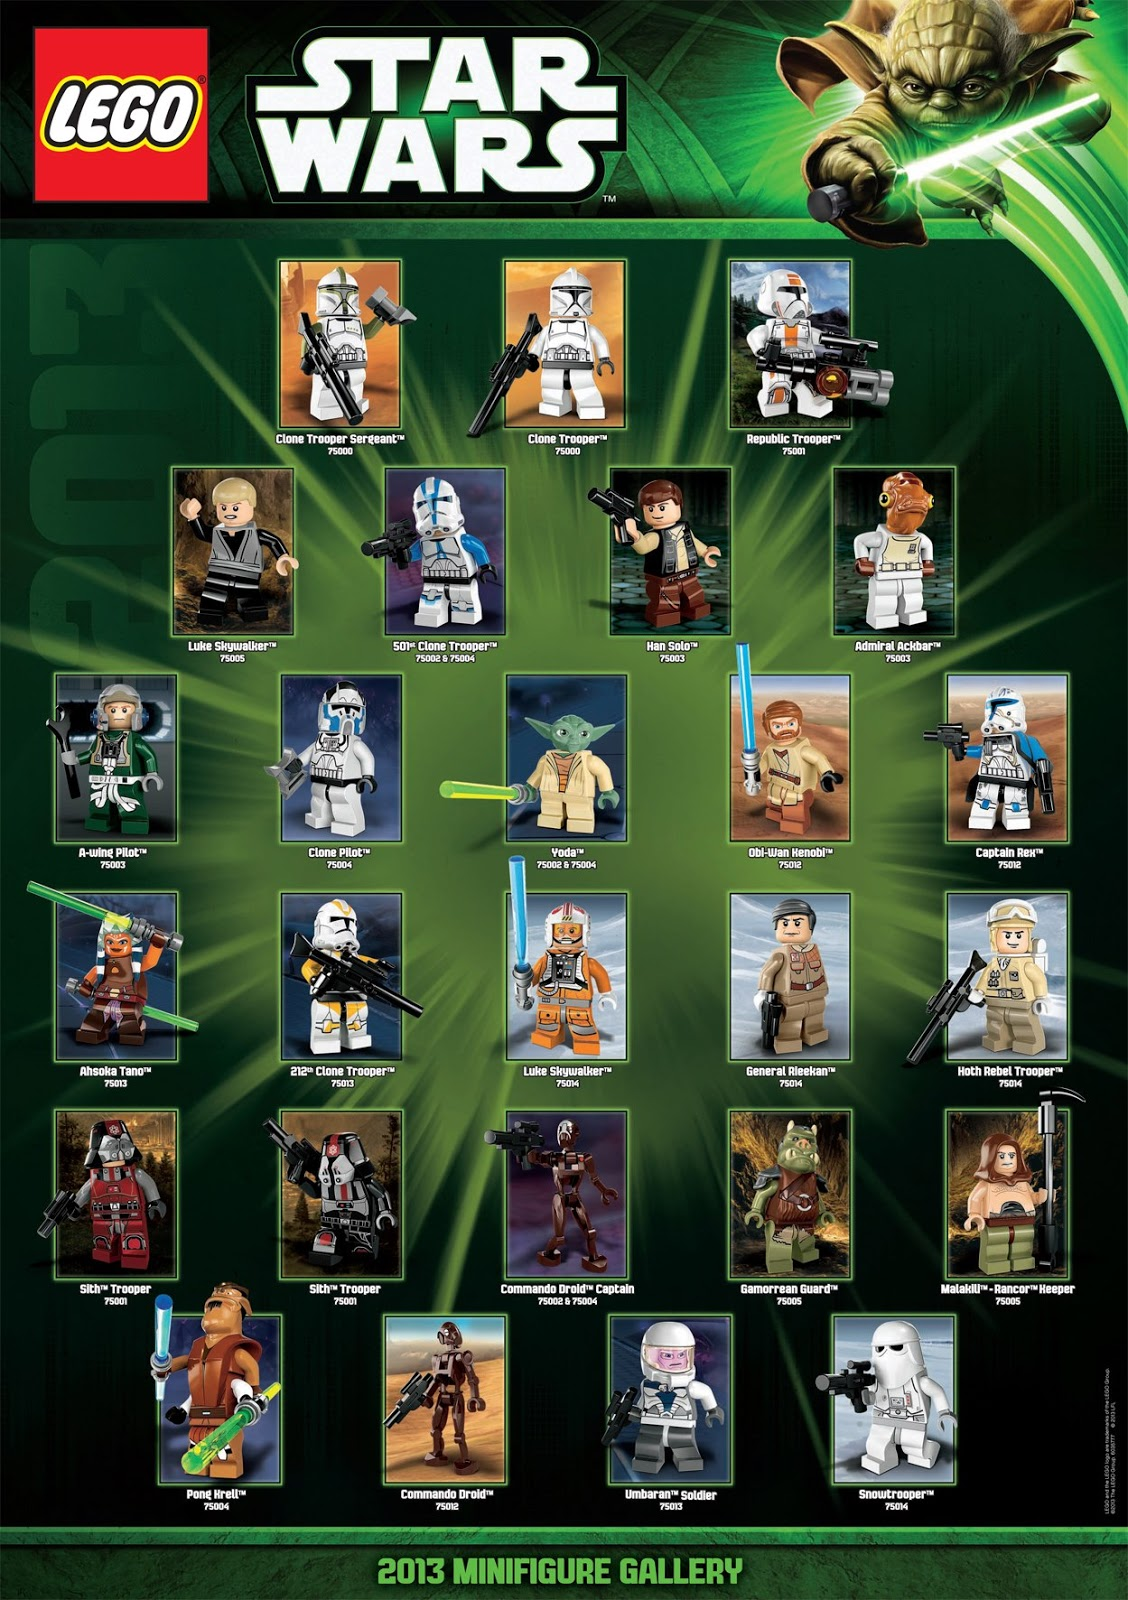 Star Wars Toys 2013 : Star wars official minifigures and sets old republic